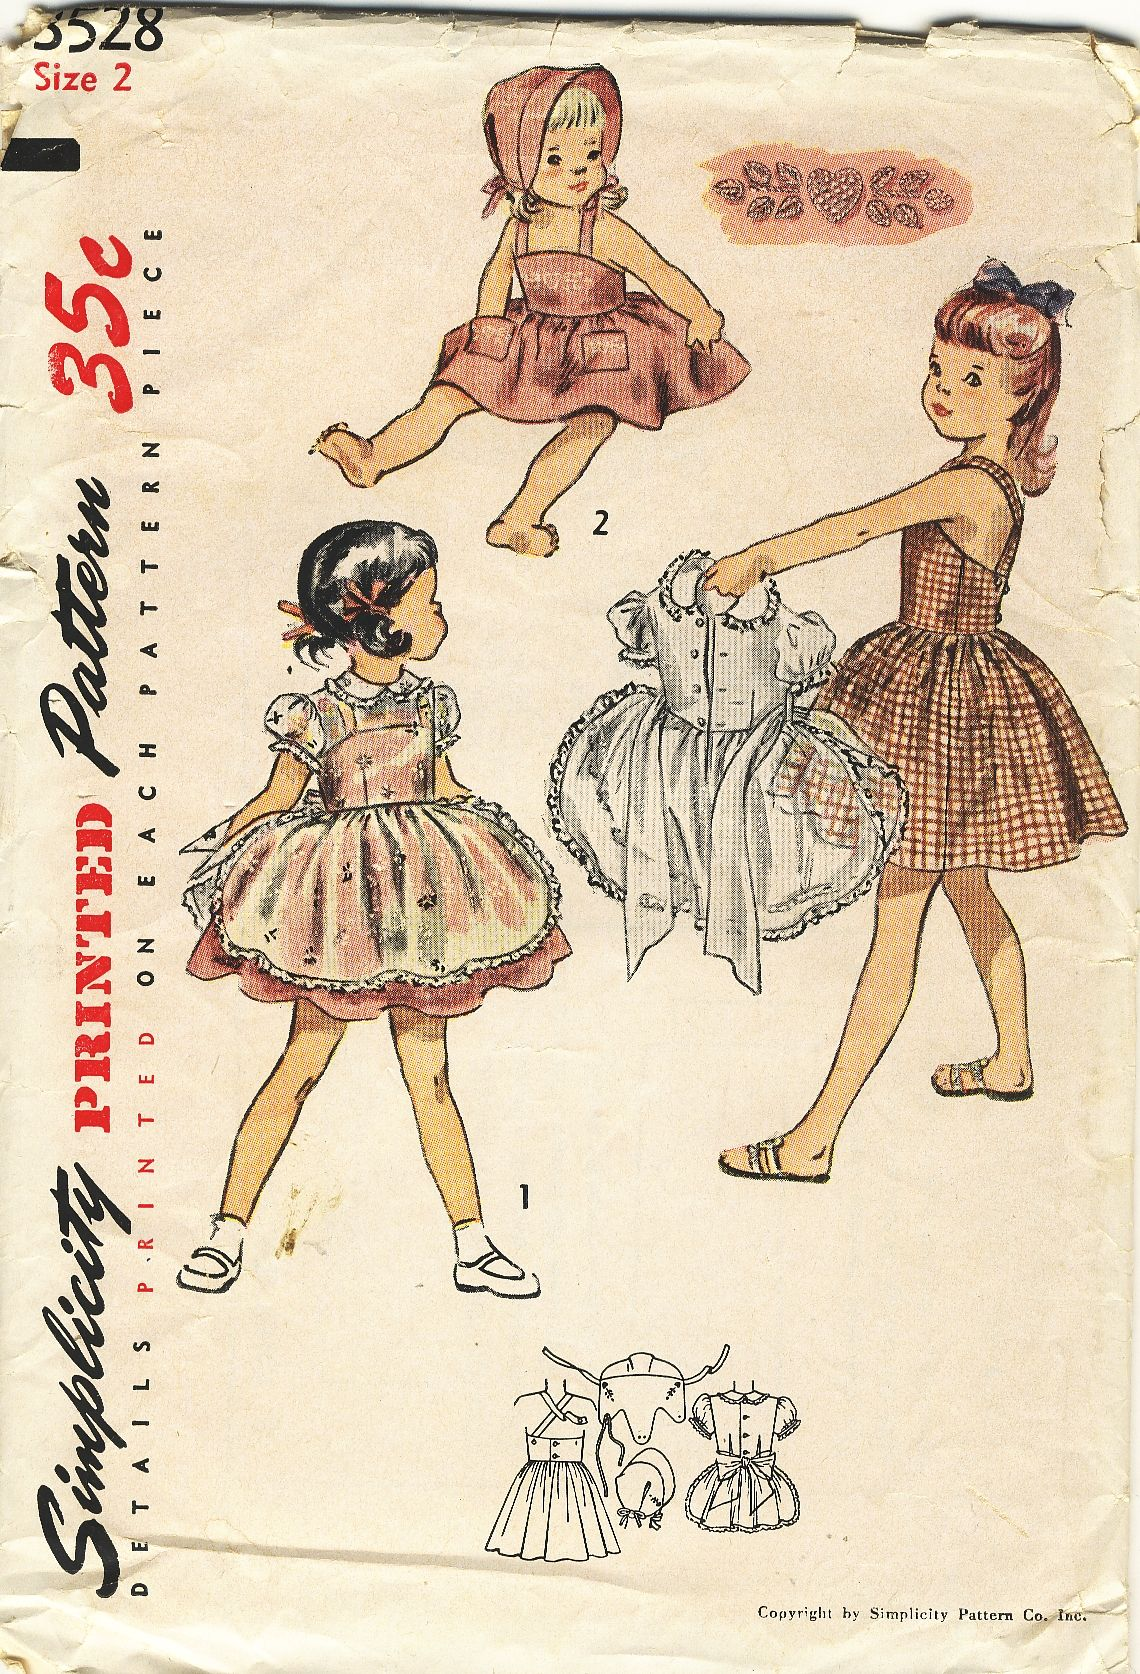 Luv the feel of remember when vintage kids patterns pinterest they dont even have the cents symbol on the keyboard biocorpaavc Gallery